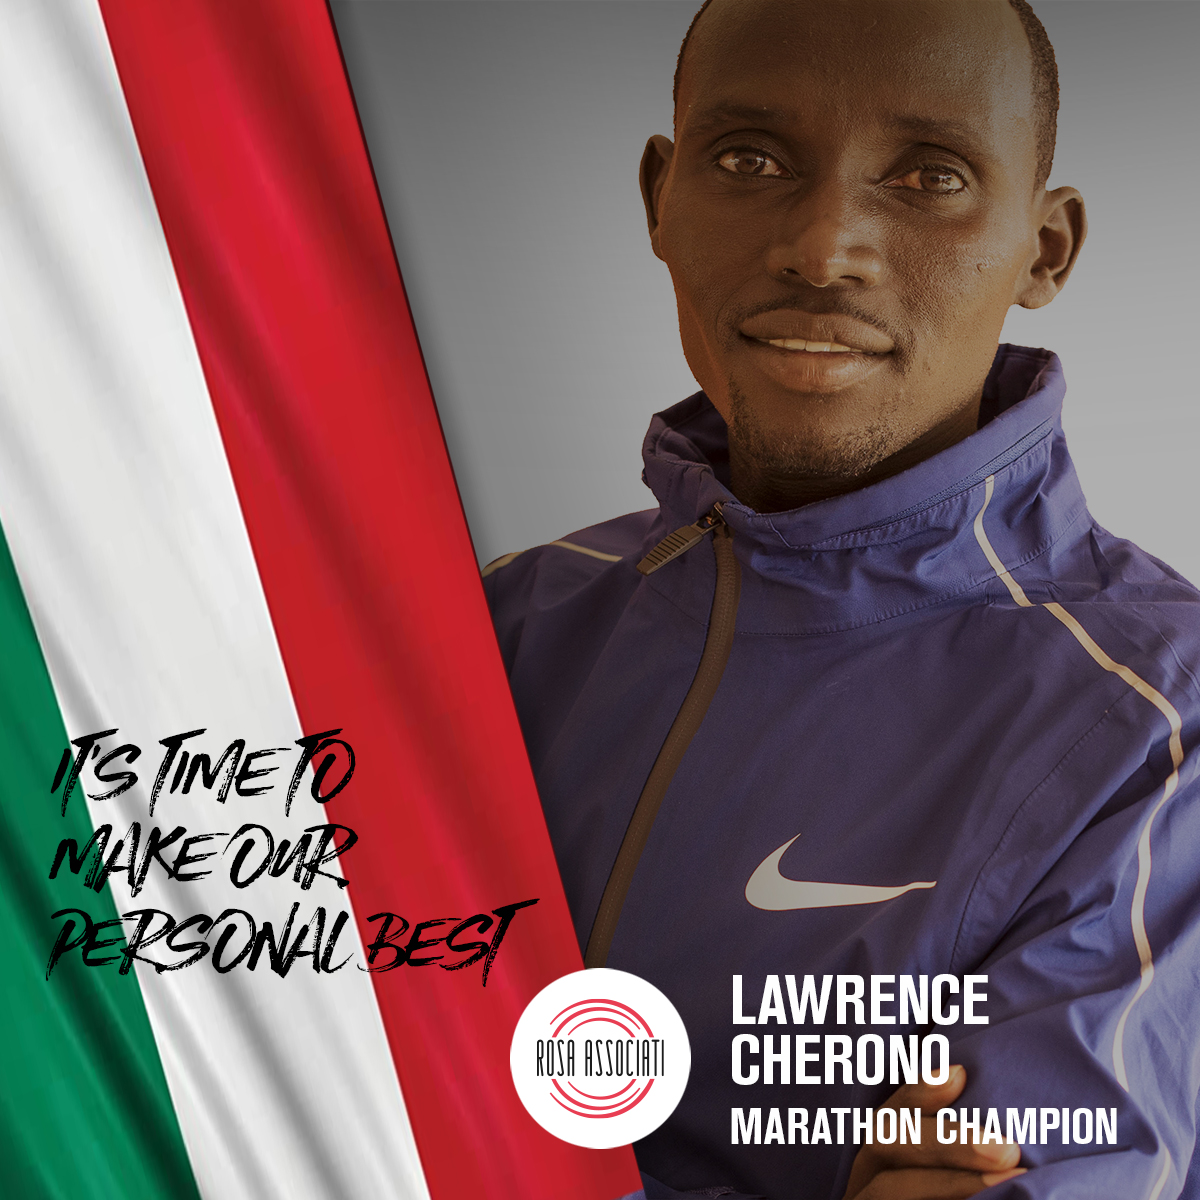 21 2020 - Campagna social We can win this race together - Lawrence Cherono